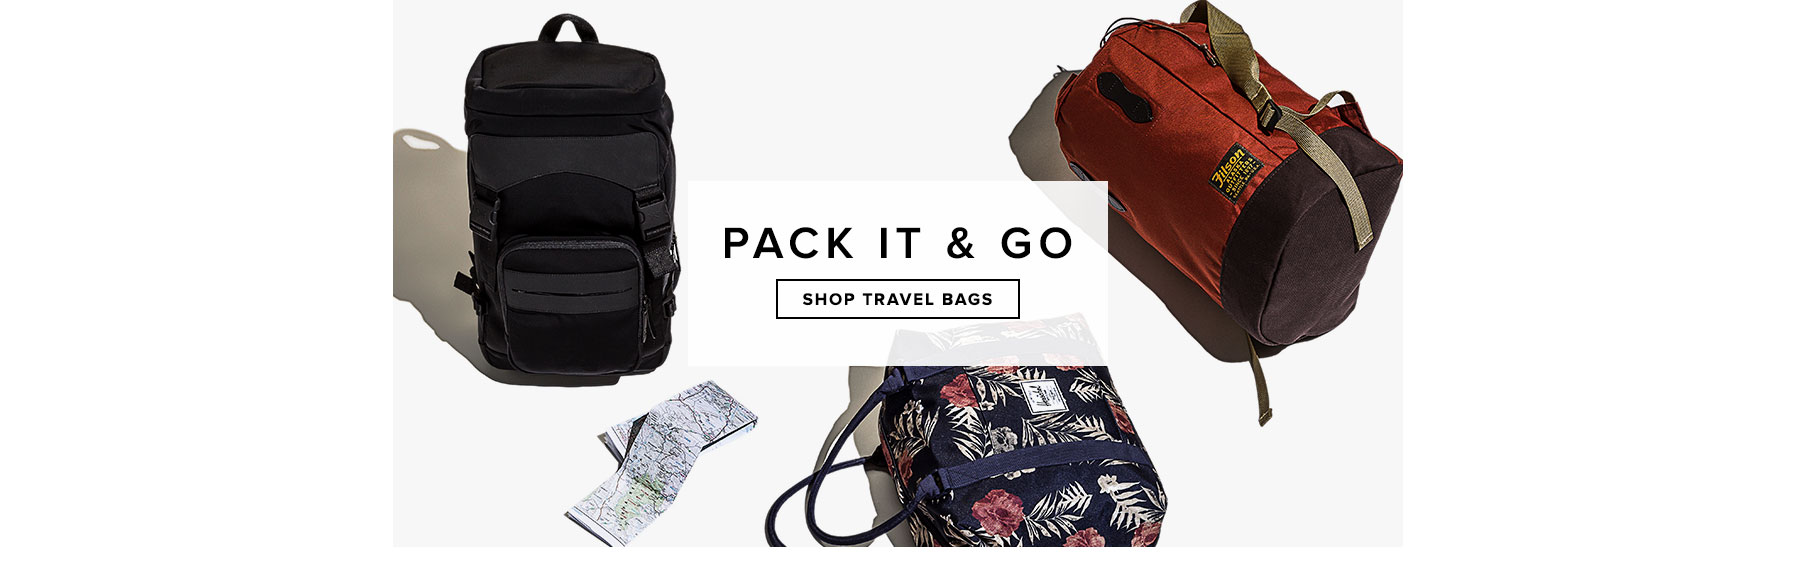 Pack It And Go - Shop Travel Bags